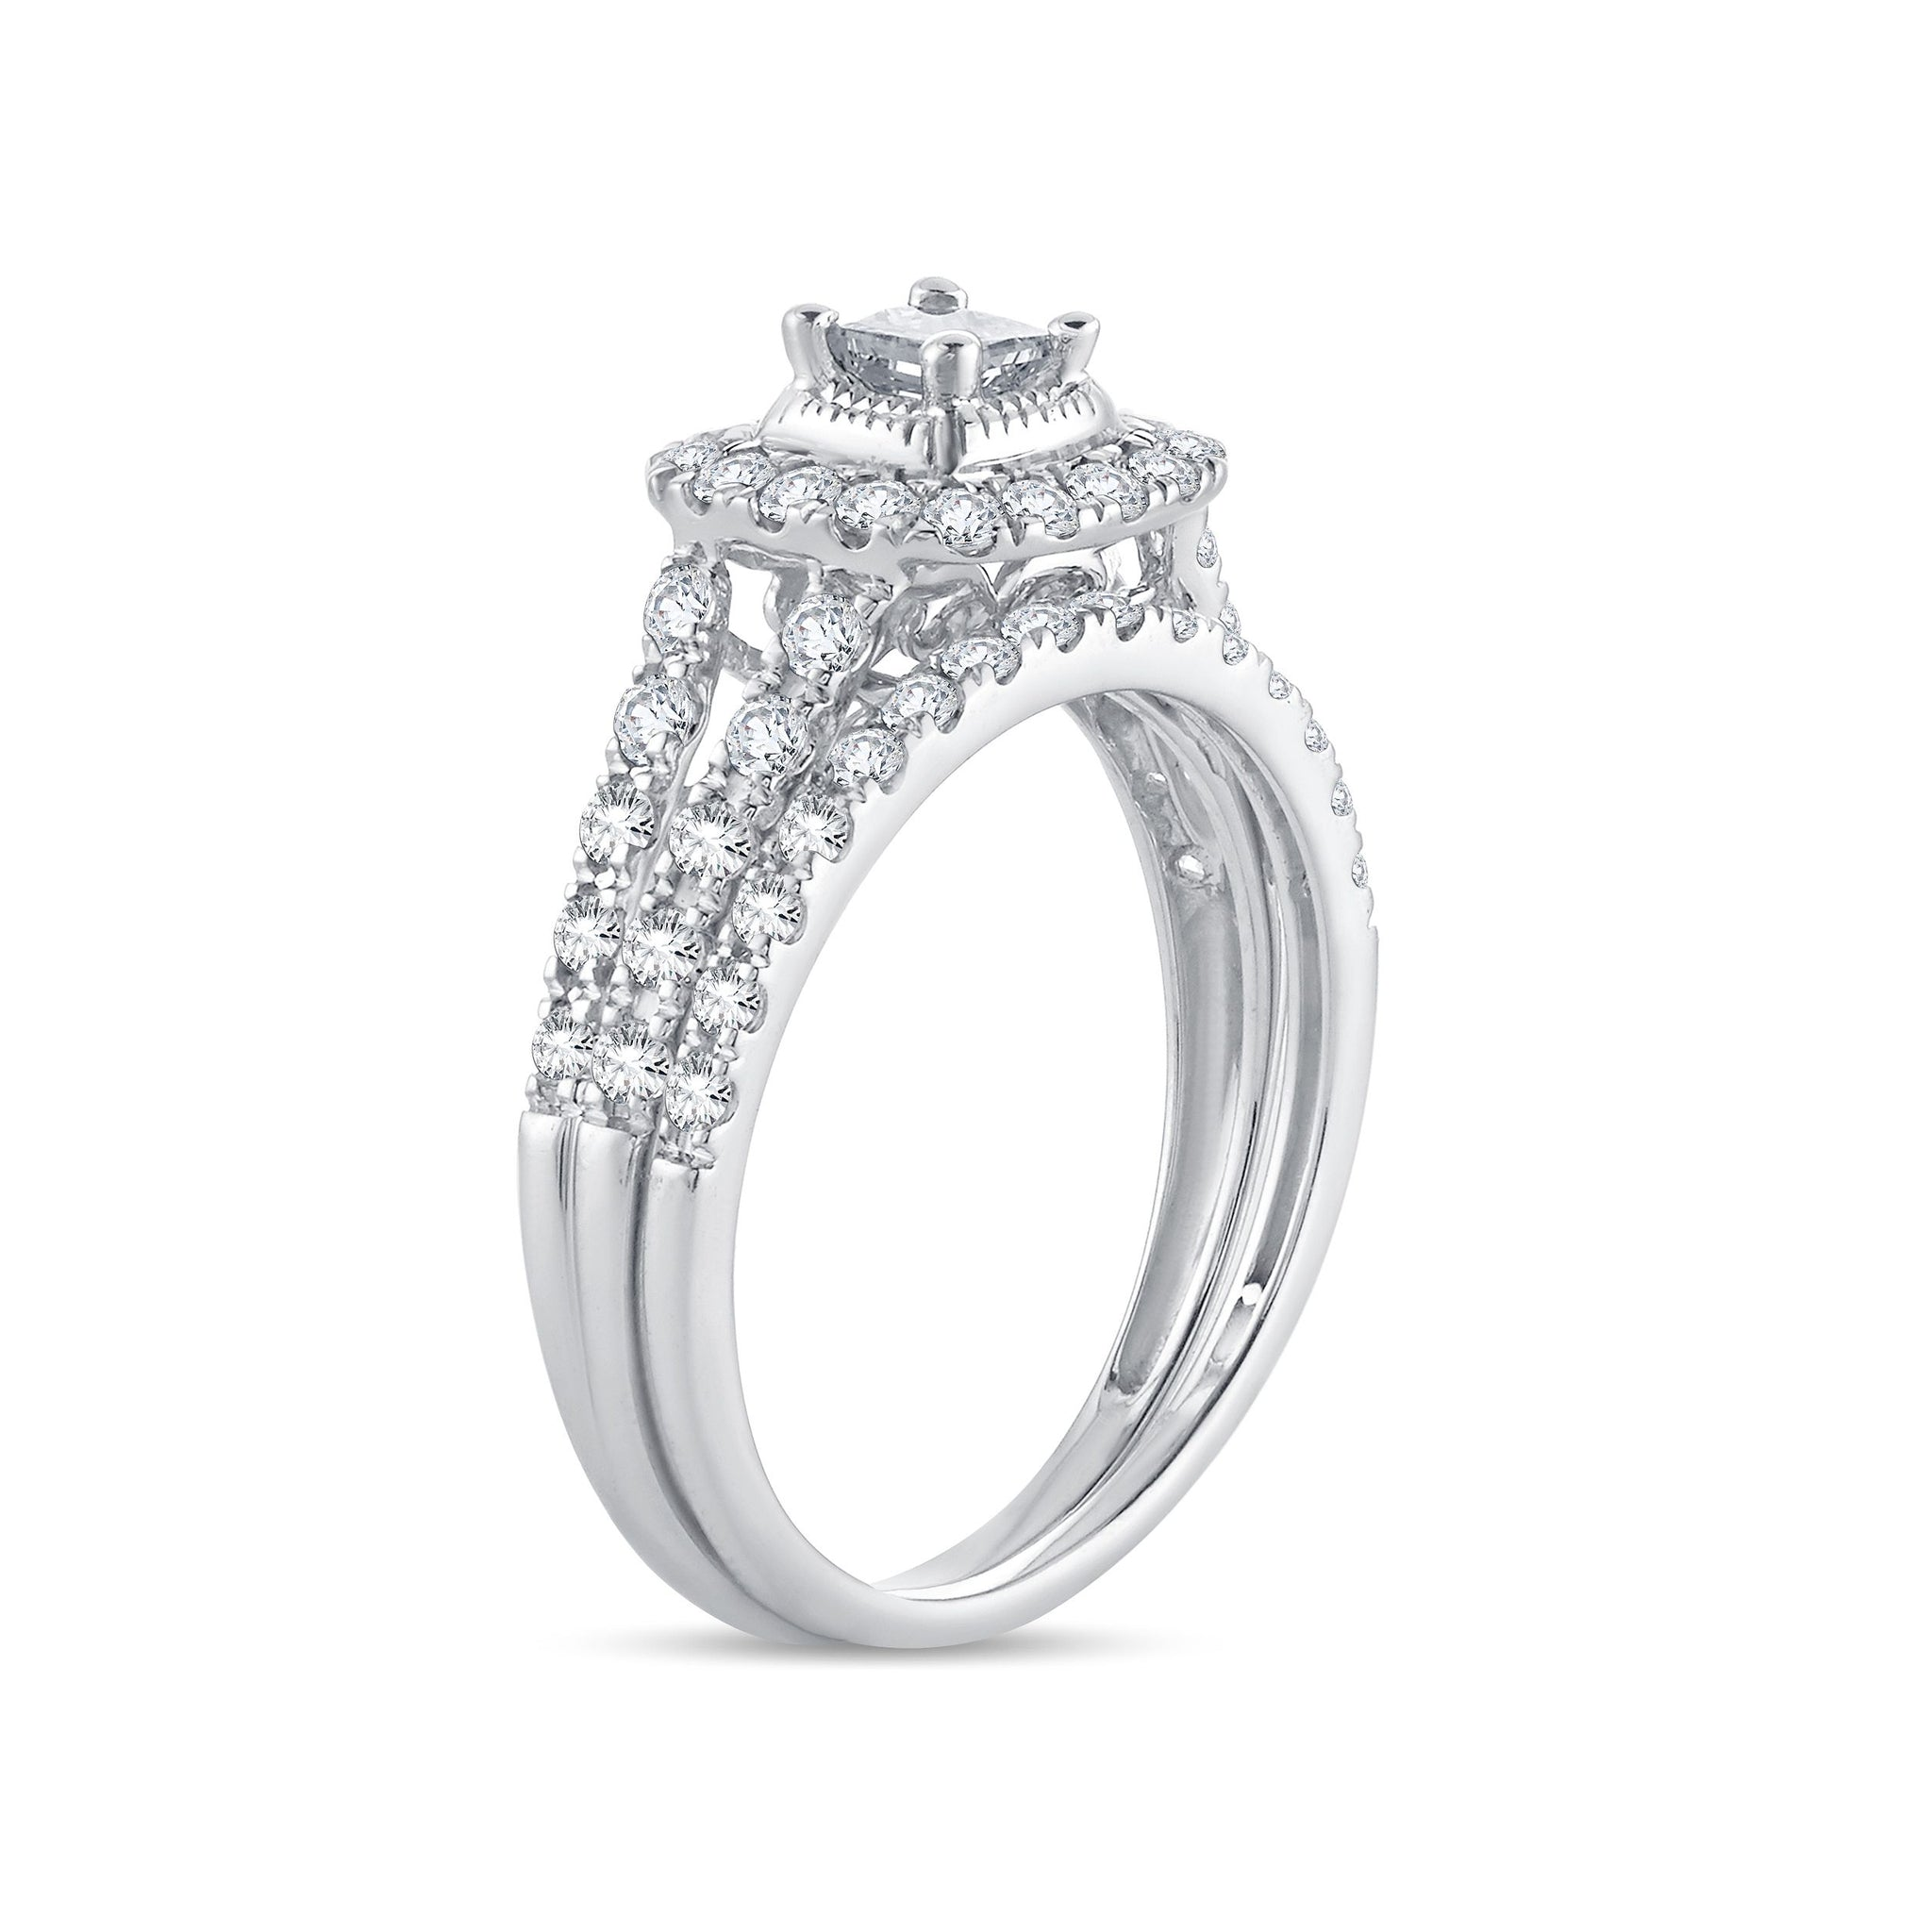 Diamond Engagement Ring with Band Cushion Cut 1.00 Carats 14KT White Gold